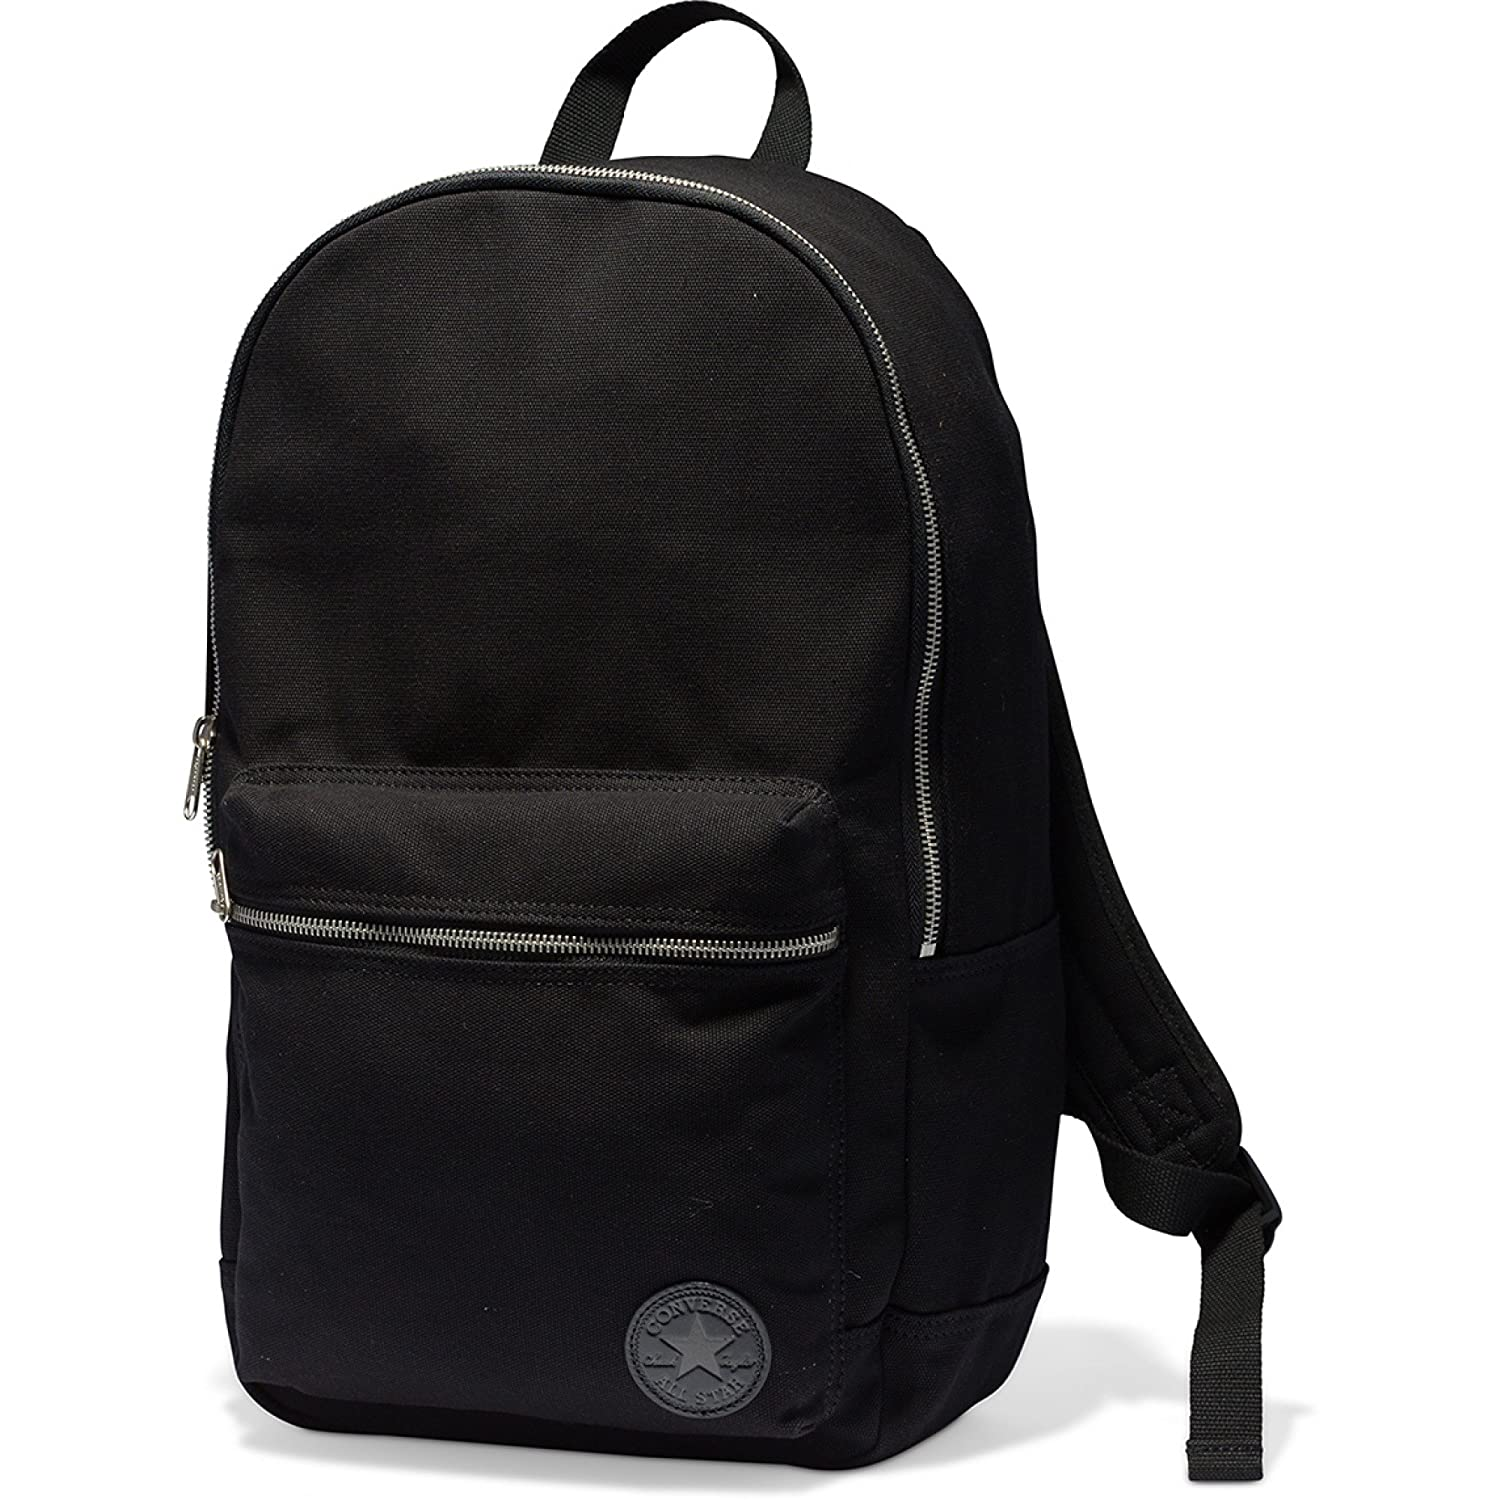 edb4c5980ca1 Amazon.com  Converse All Star Core Plus Backpack School Shoulder Bag - Black   Sports   Outdoors